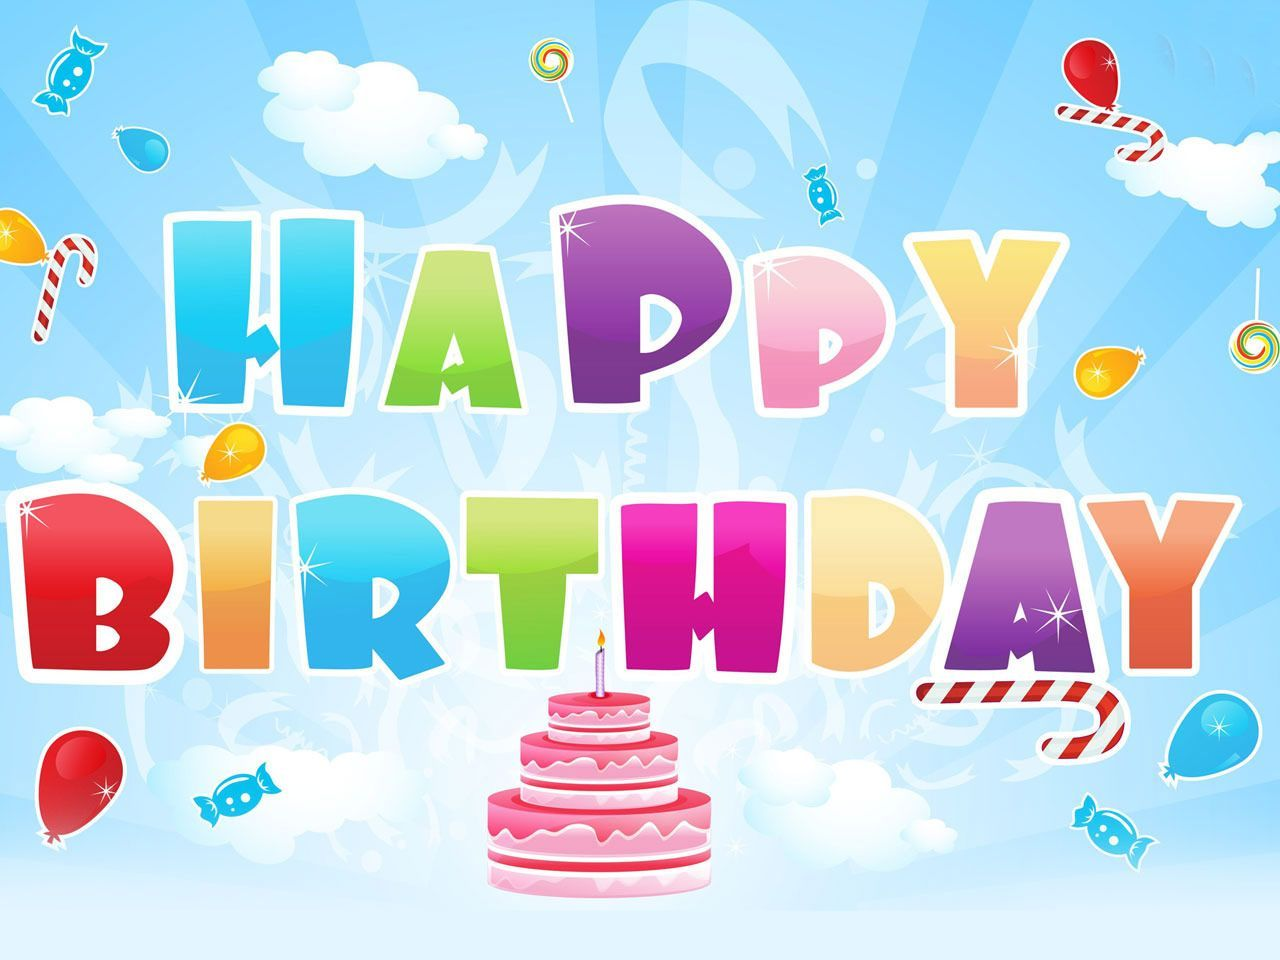 Wallpapers Happy Birthday  1280x960